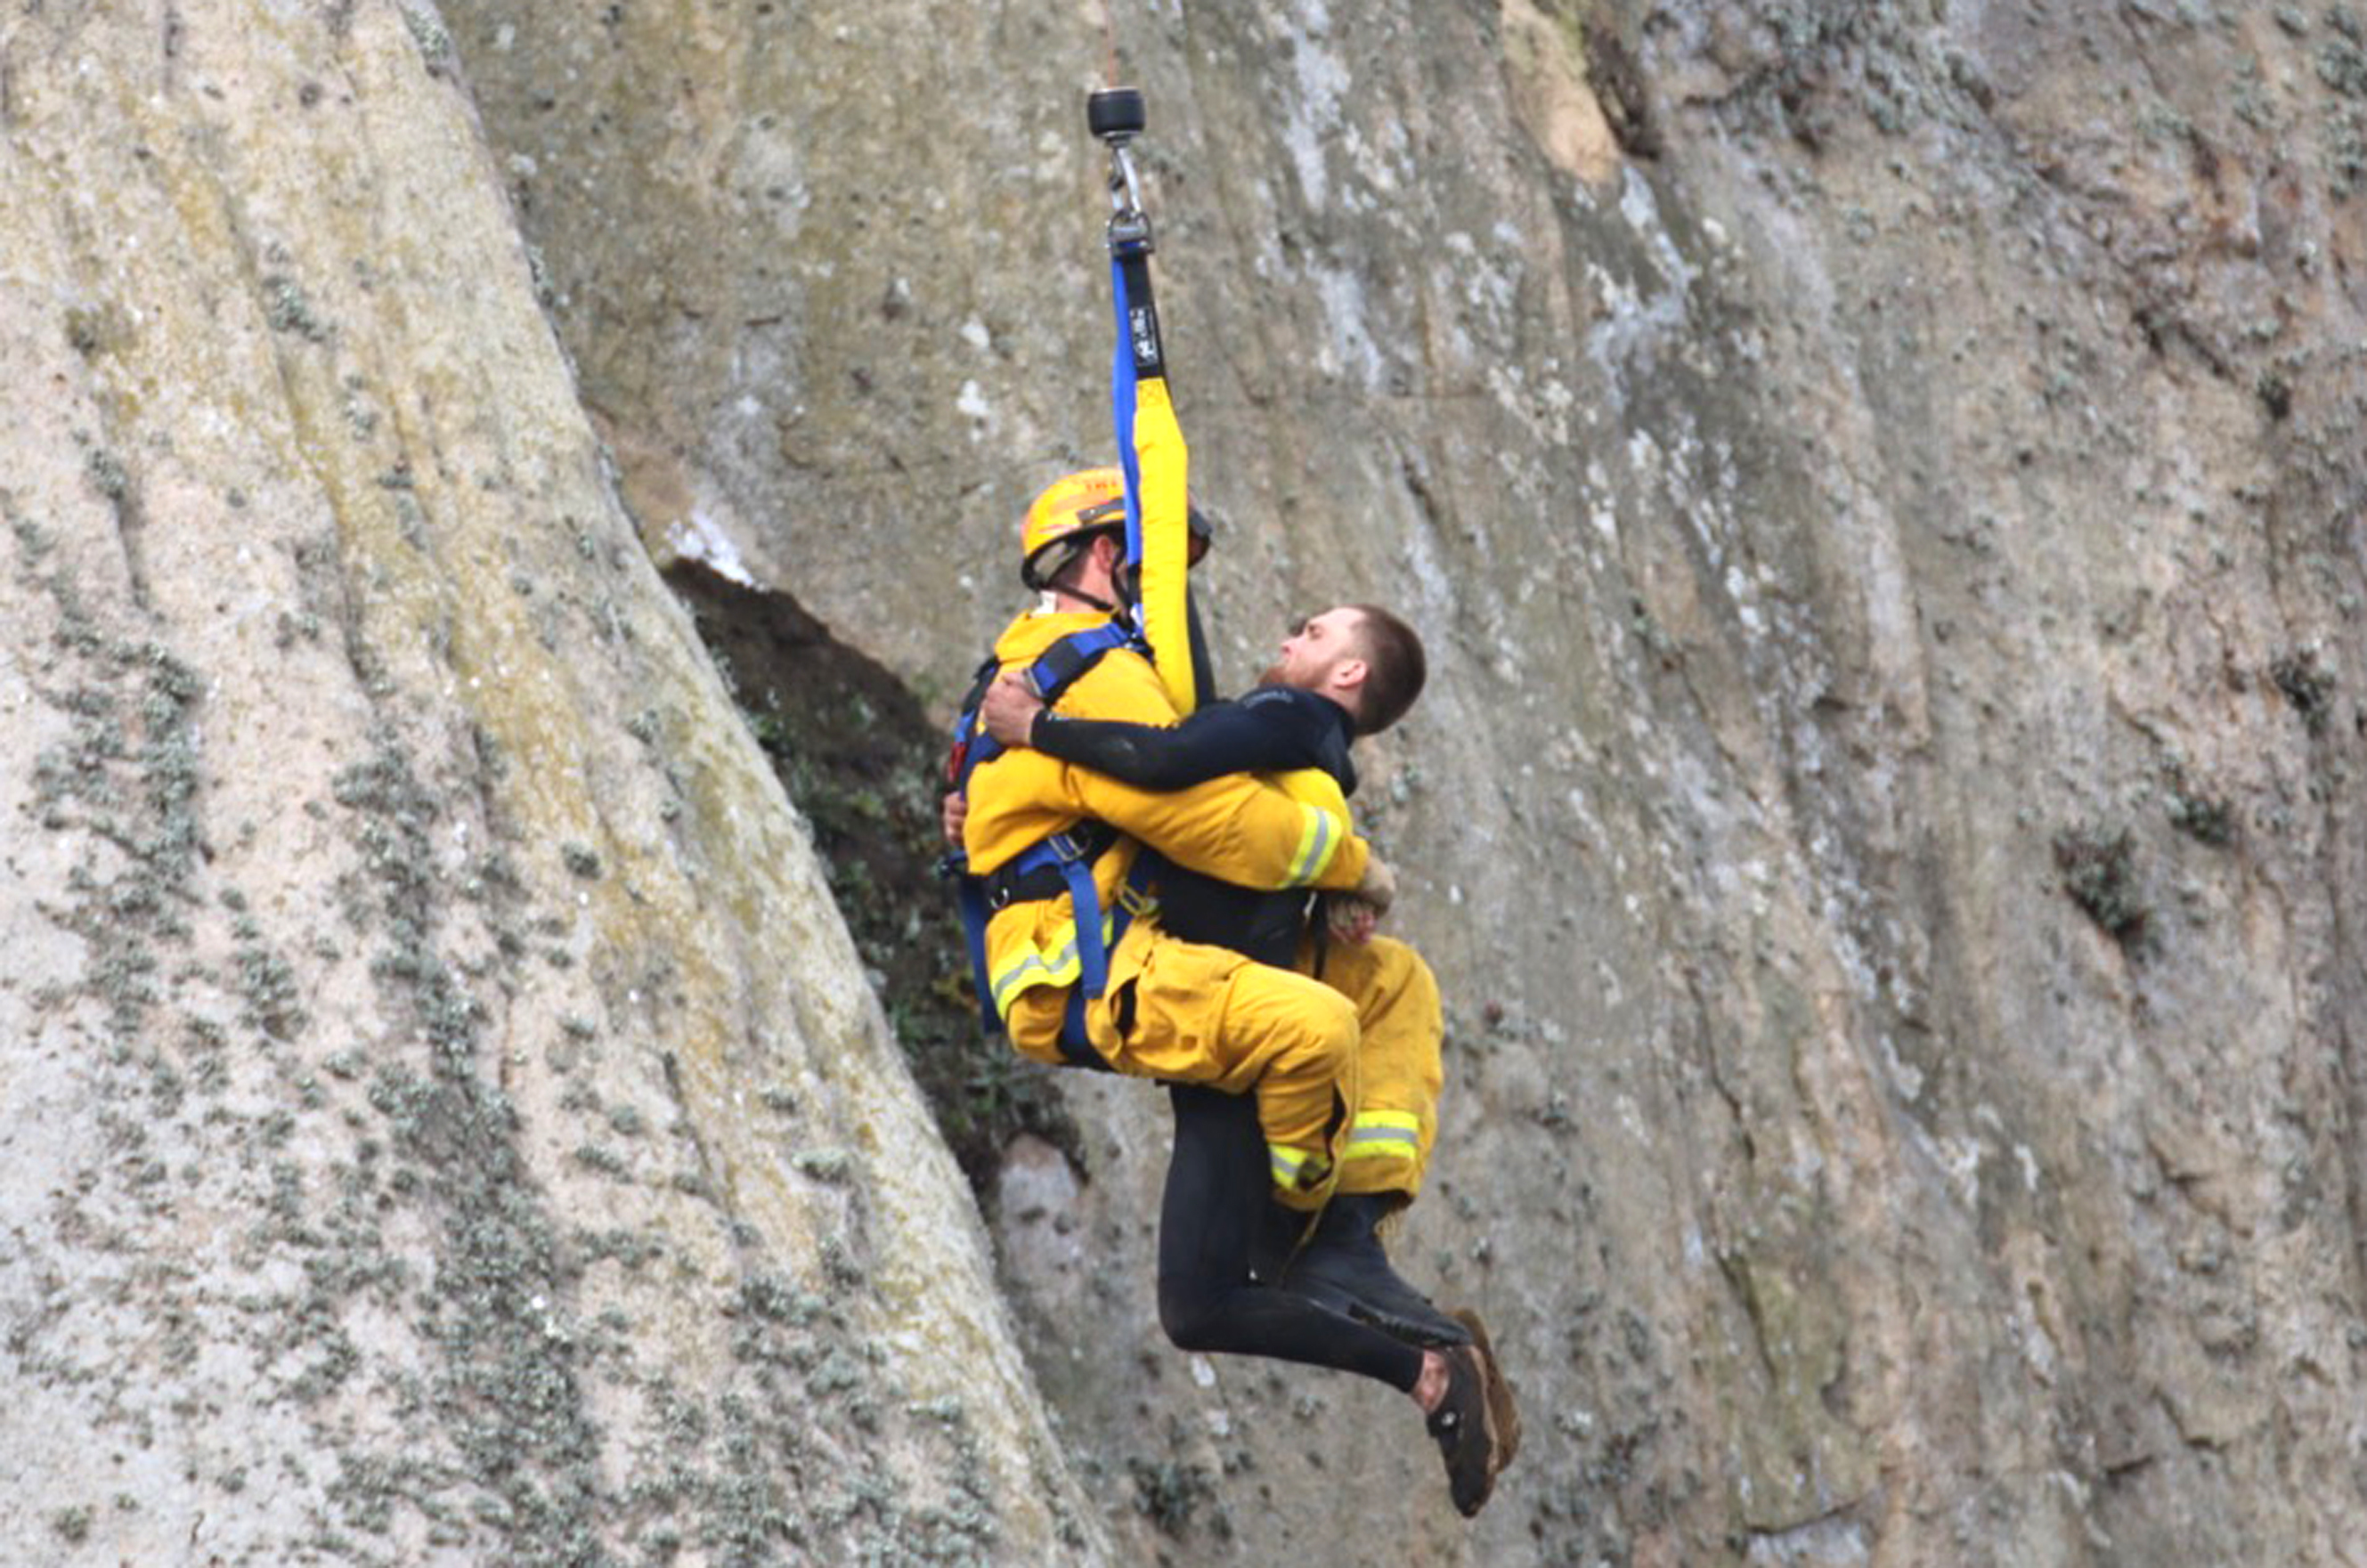 In this photo provided by Bob Isenberg, Michael Banks is rescued after being stranded on a ledge some 80 off the ground on Morro Rock, a landmark in Morro Bay, Calif., Thursday, April 7, 2016. He had scaled the rock to make an Internet proposal to his girlfriend - who said yes - but then got stuck on a ledge and couldn't get down. A helicopter had to be called, and Morro Bay Fire Department Capt. Todd Gailey was lowered by cable to pluck Banks and take him to safety.(Bob Isenberg via AP)